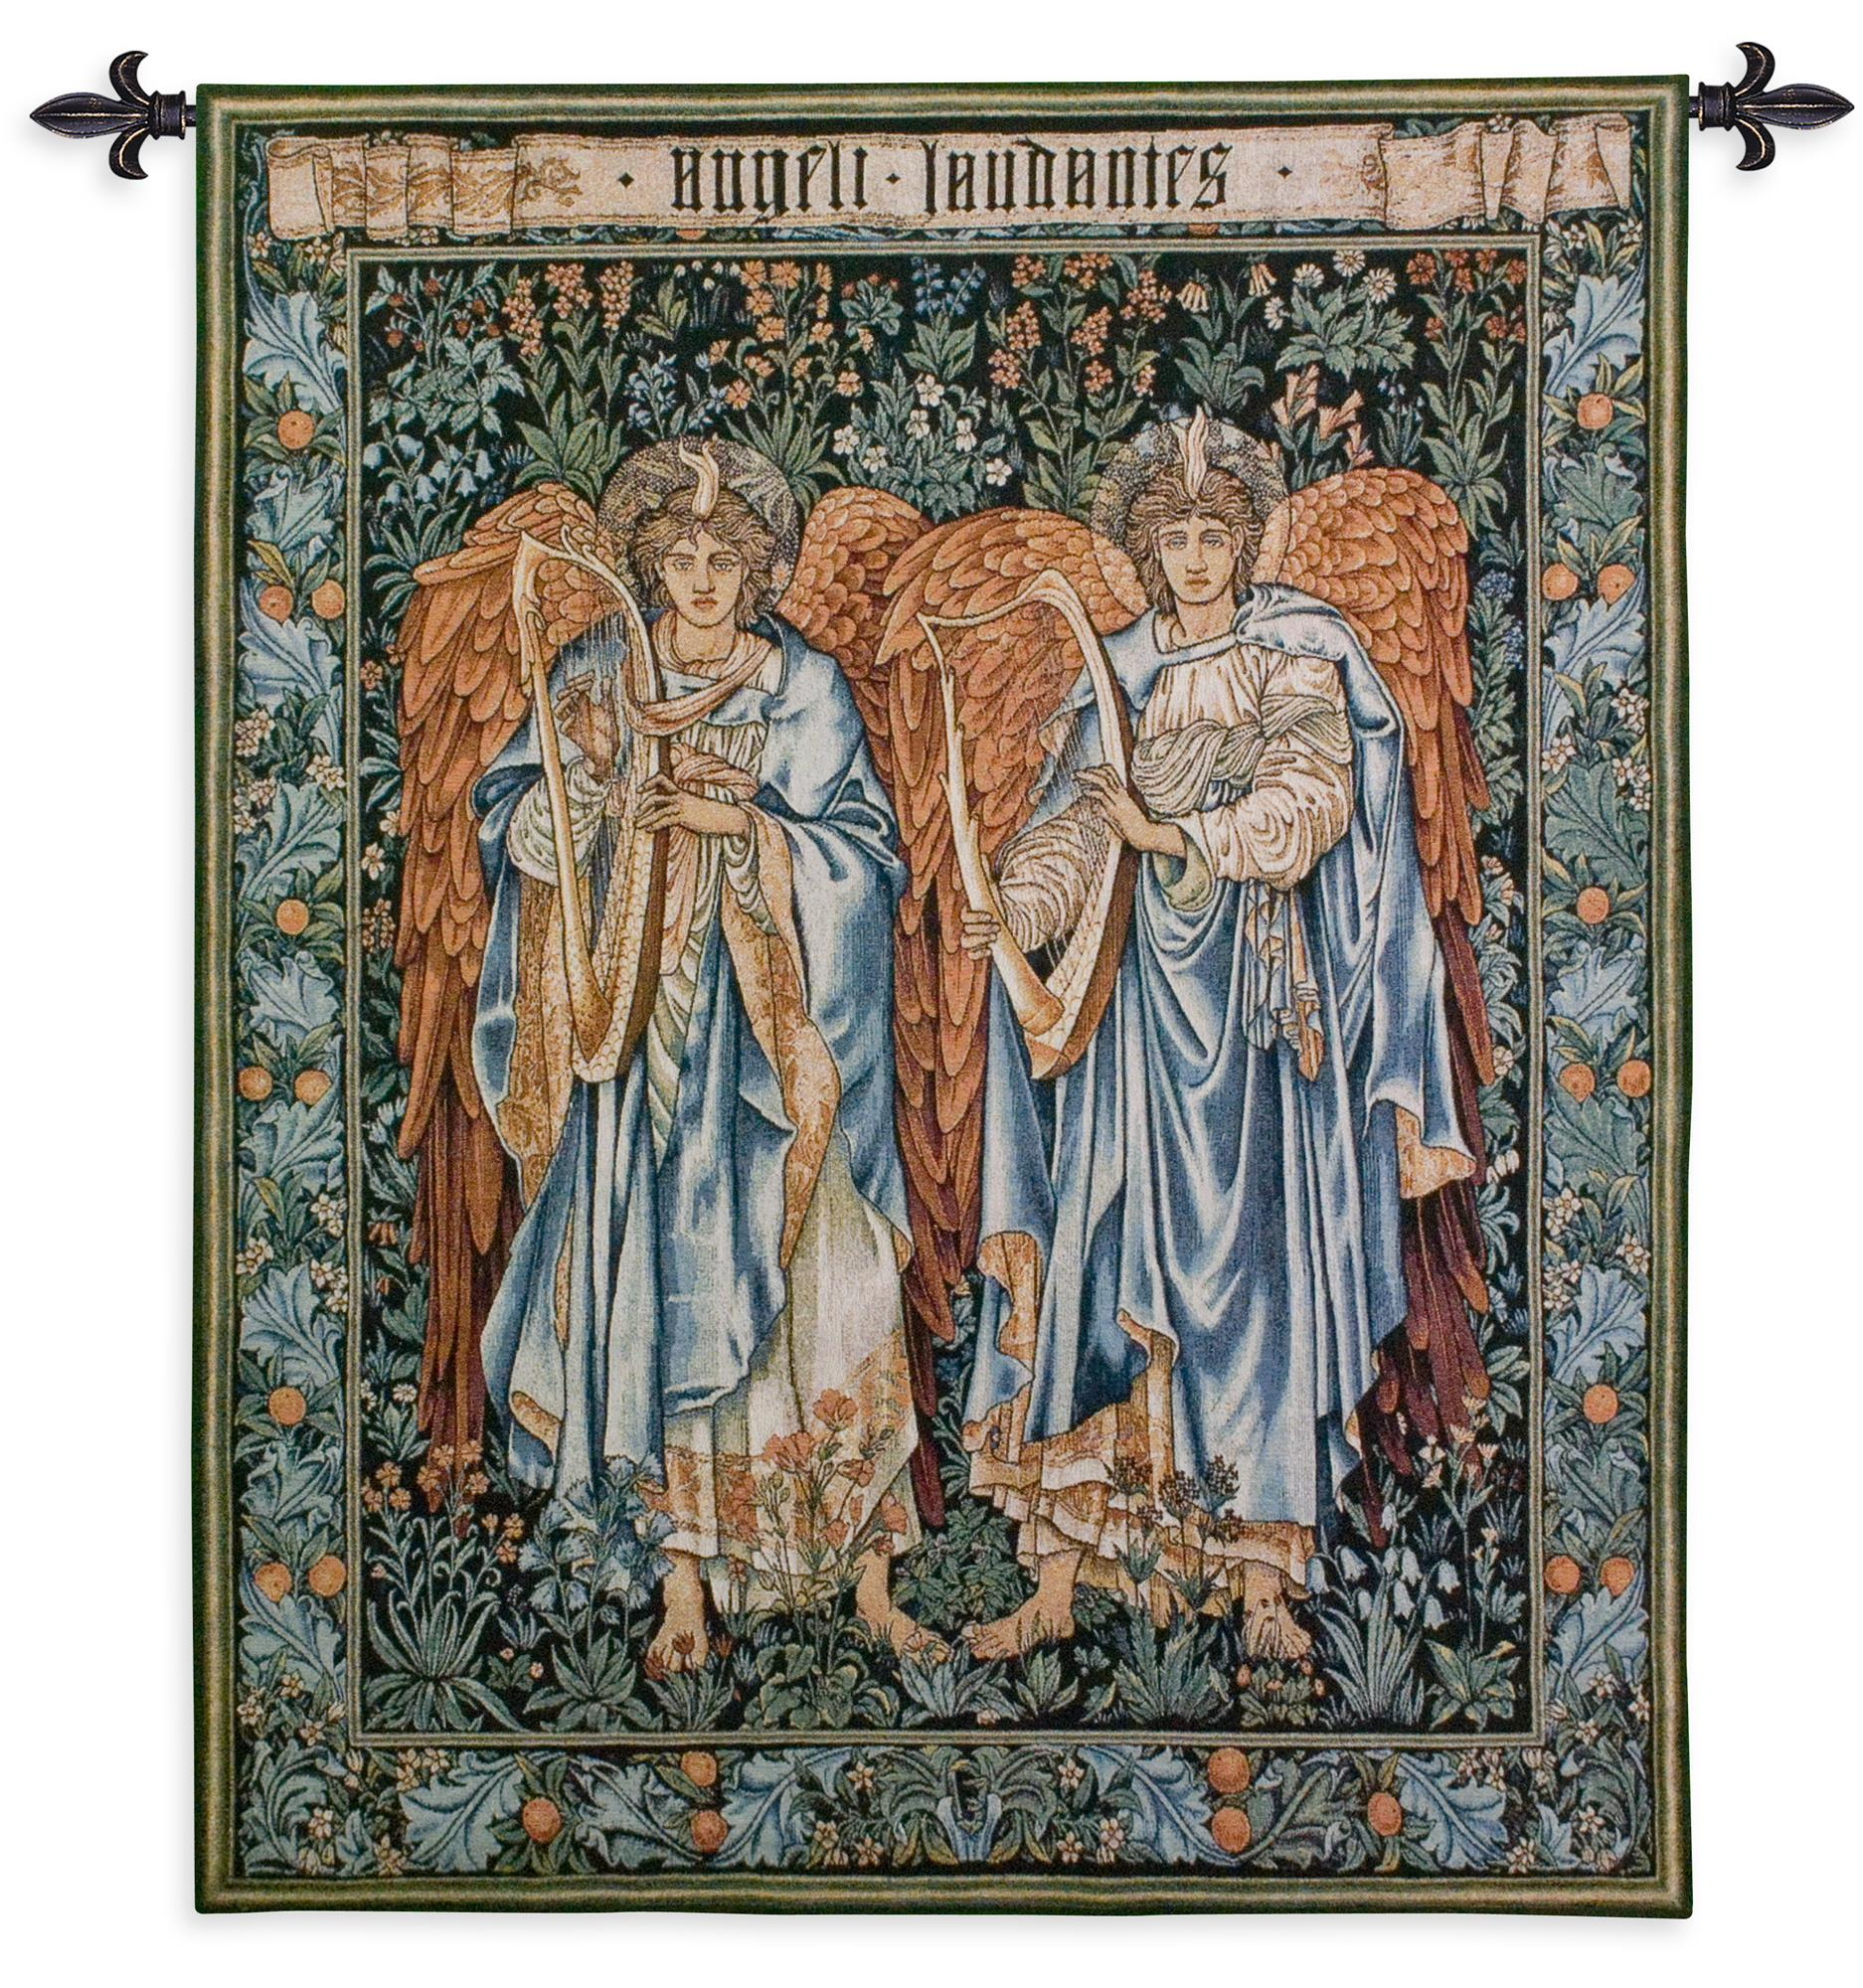 Angeli Laudantes Tapestry Wall Hanging